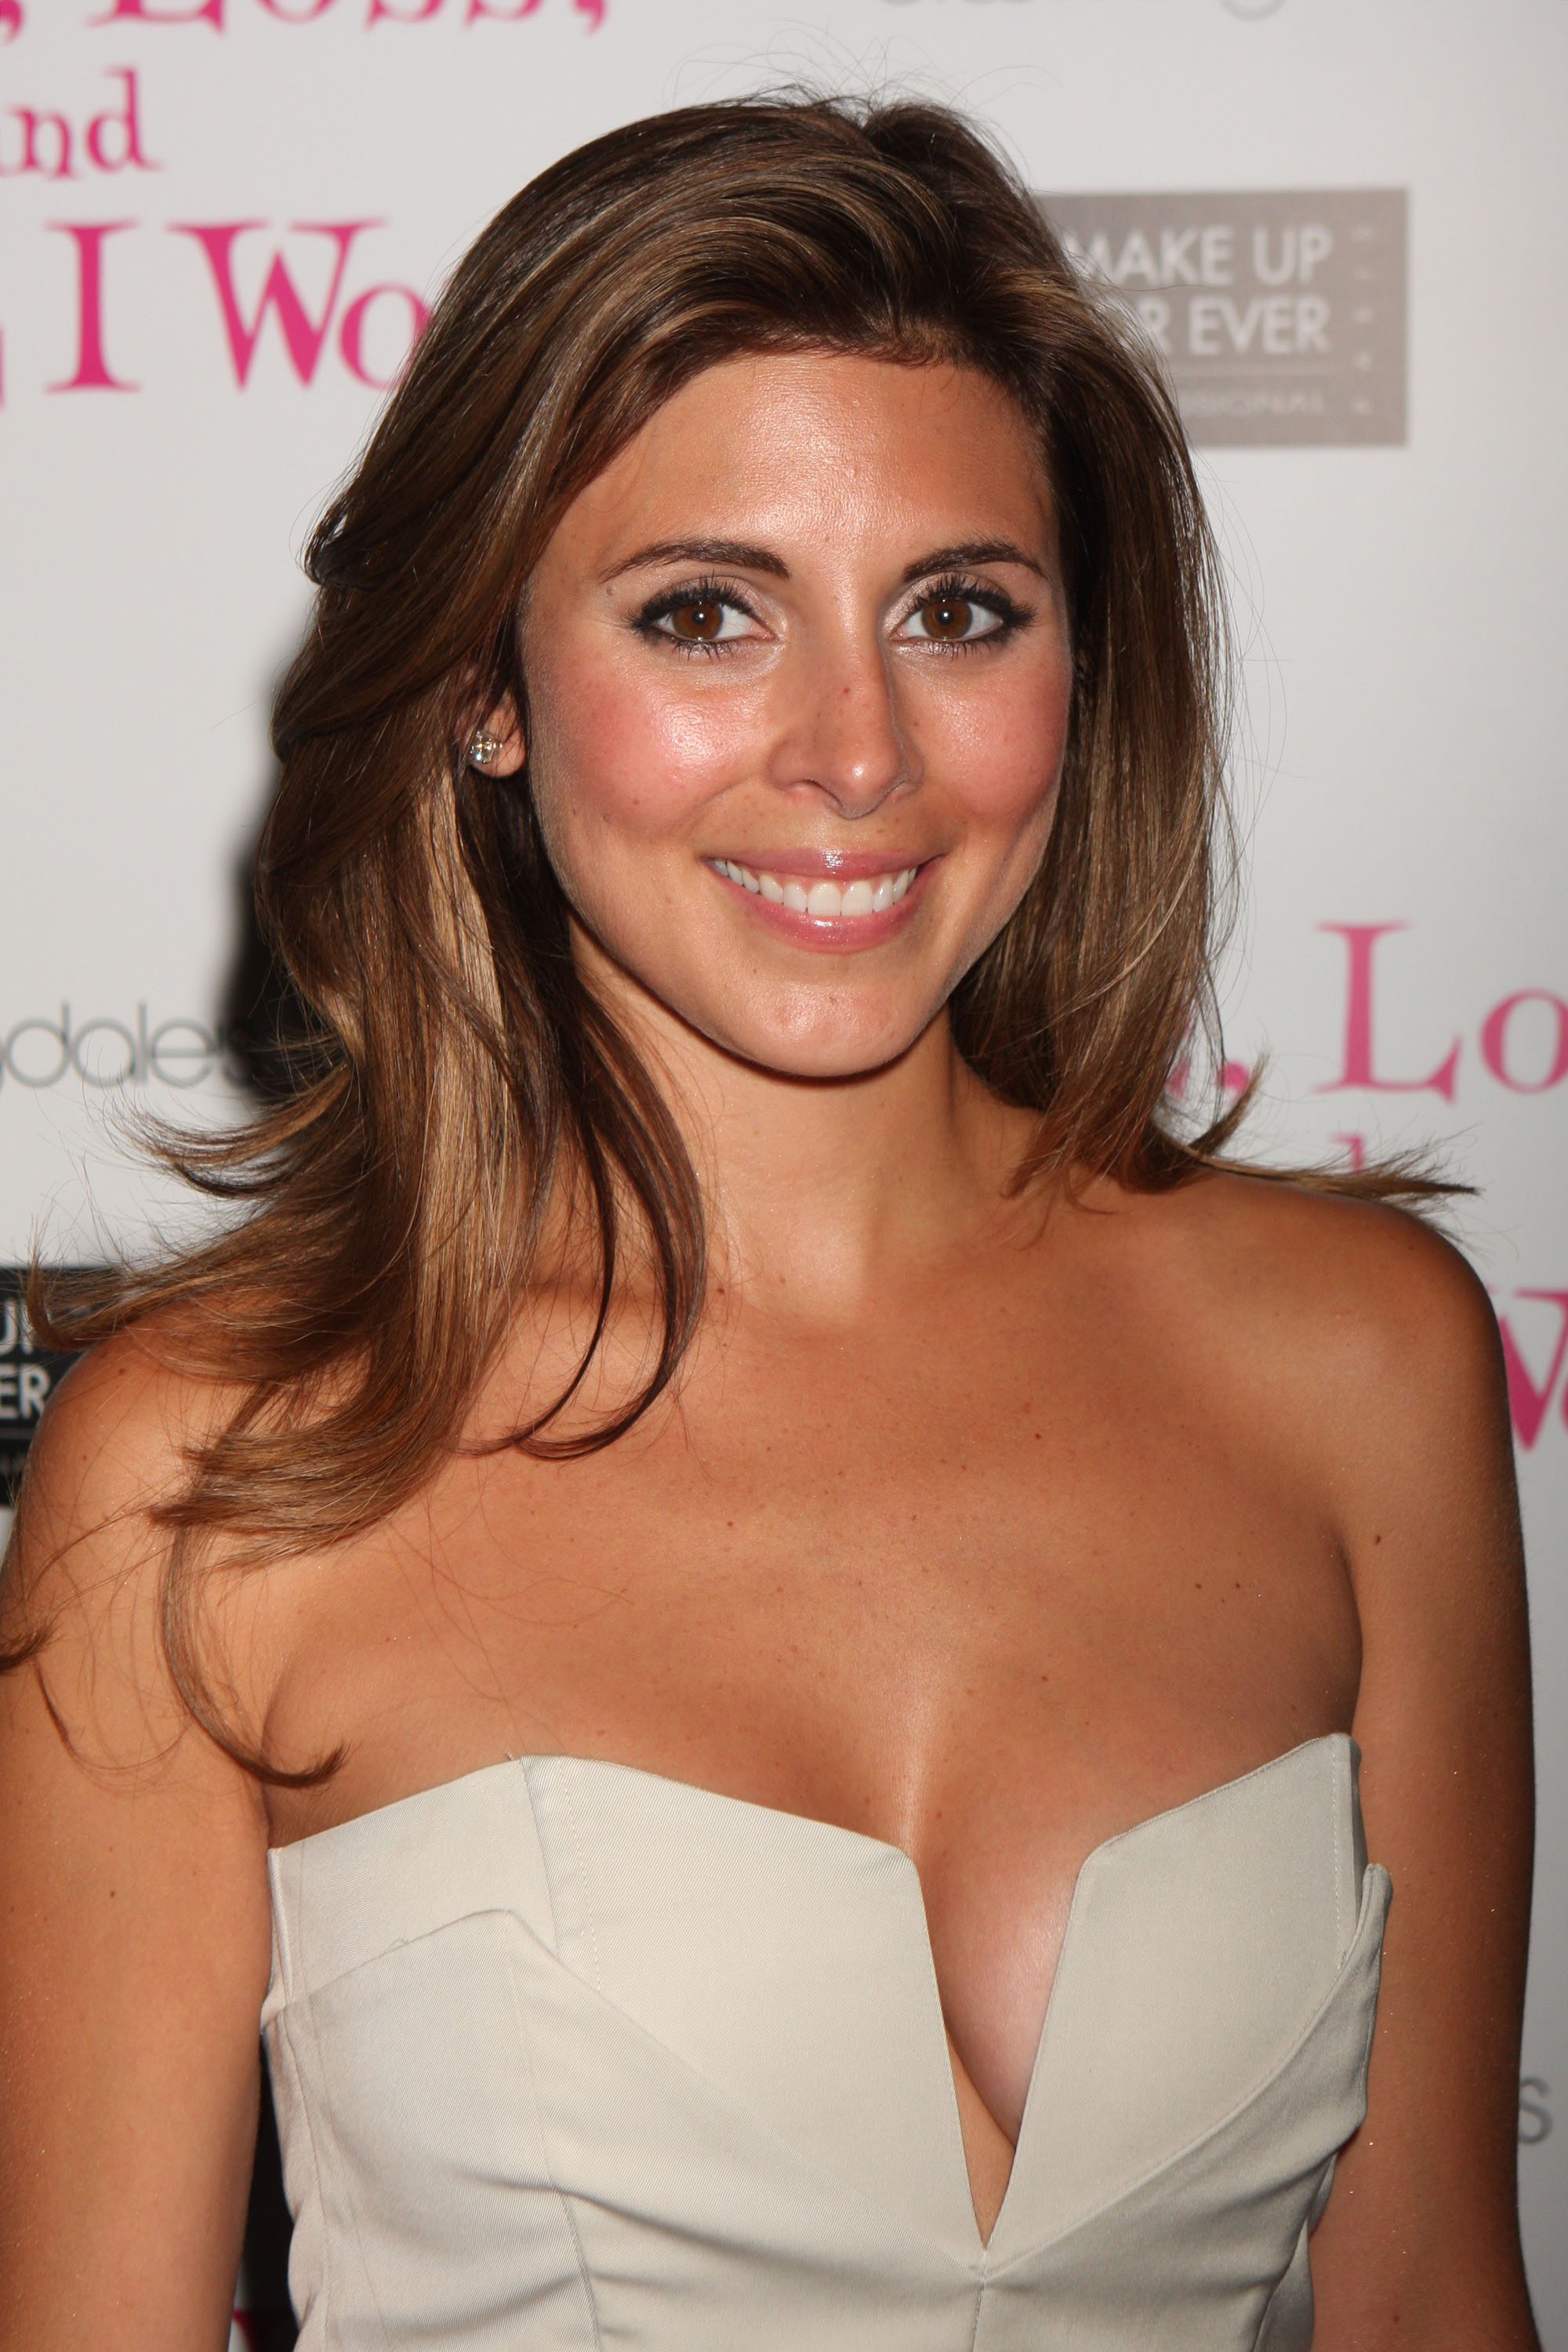 Jamie-Lynn Sigler nudes (69 pictures), Is a cute Paparazzi, iCloud, swimsuit 2019